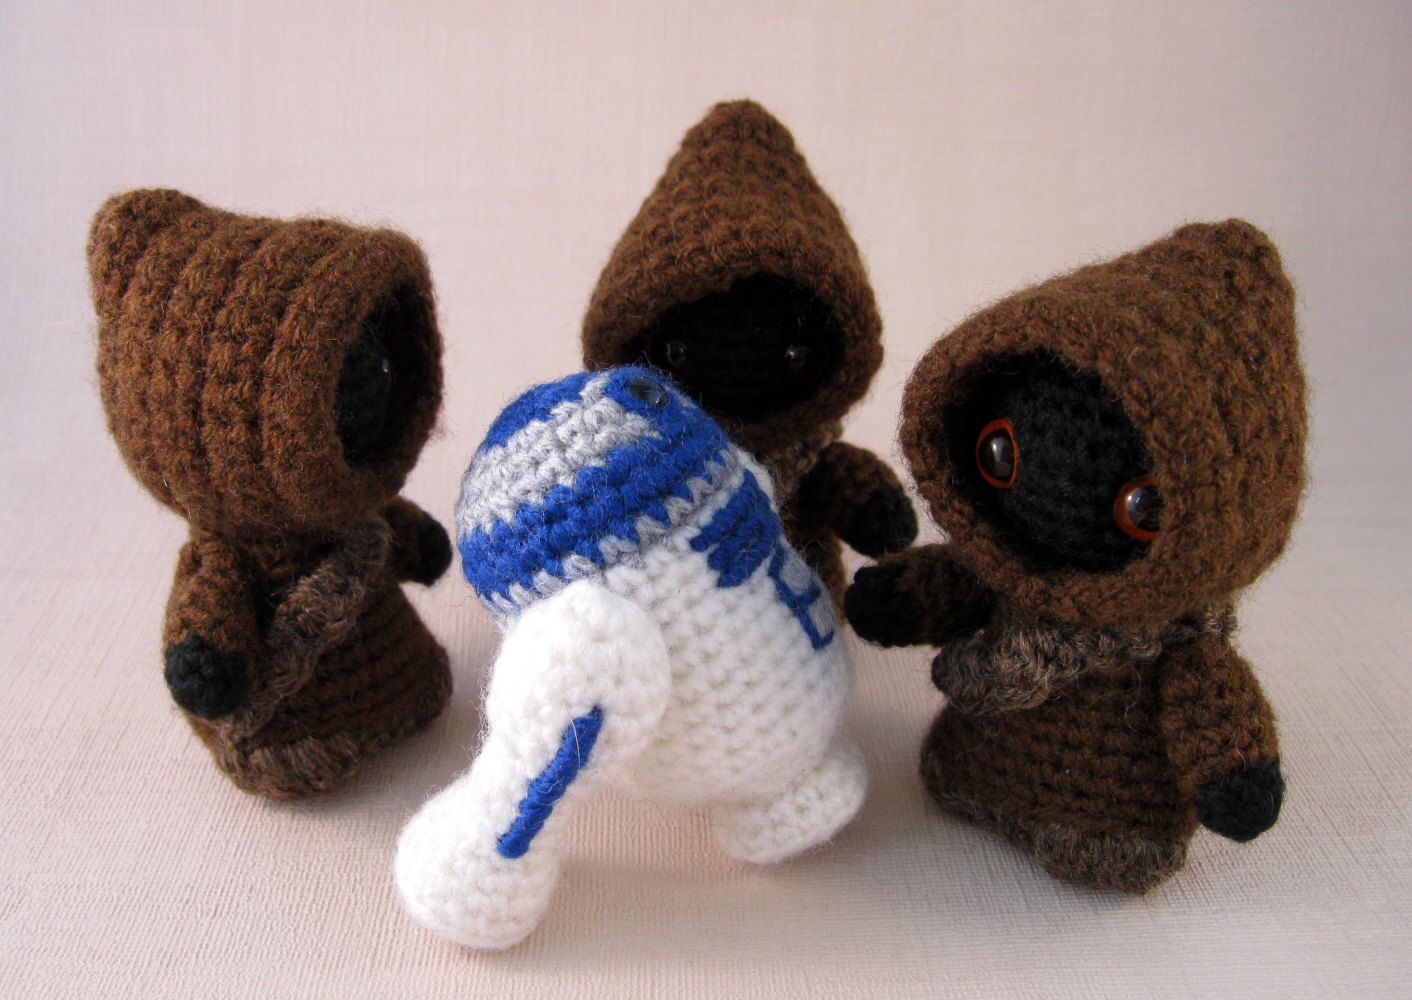 Amigurumi Star Wars Patterns : Pdf of jawa star wars mini amigurumi pattern. $3.50 via etsy